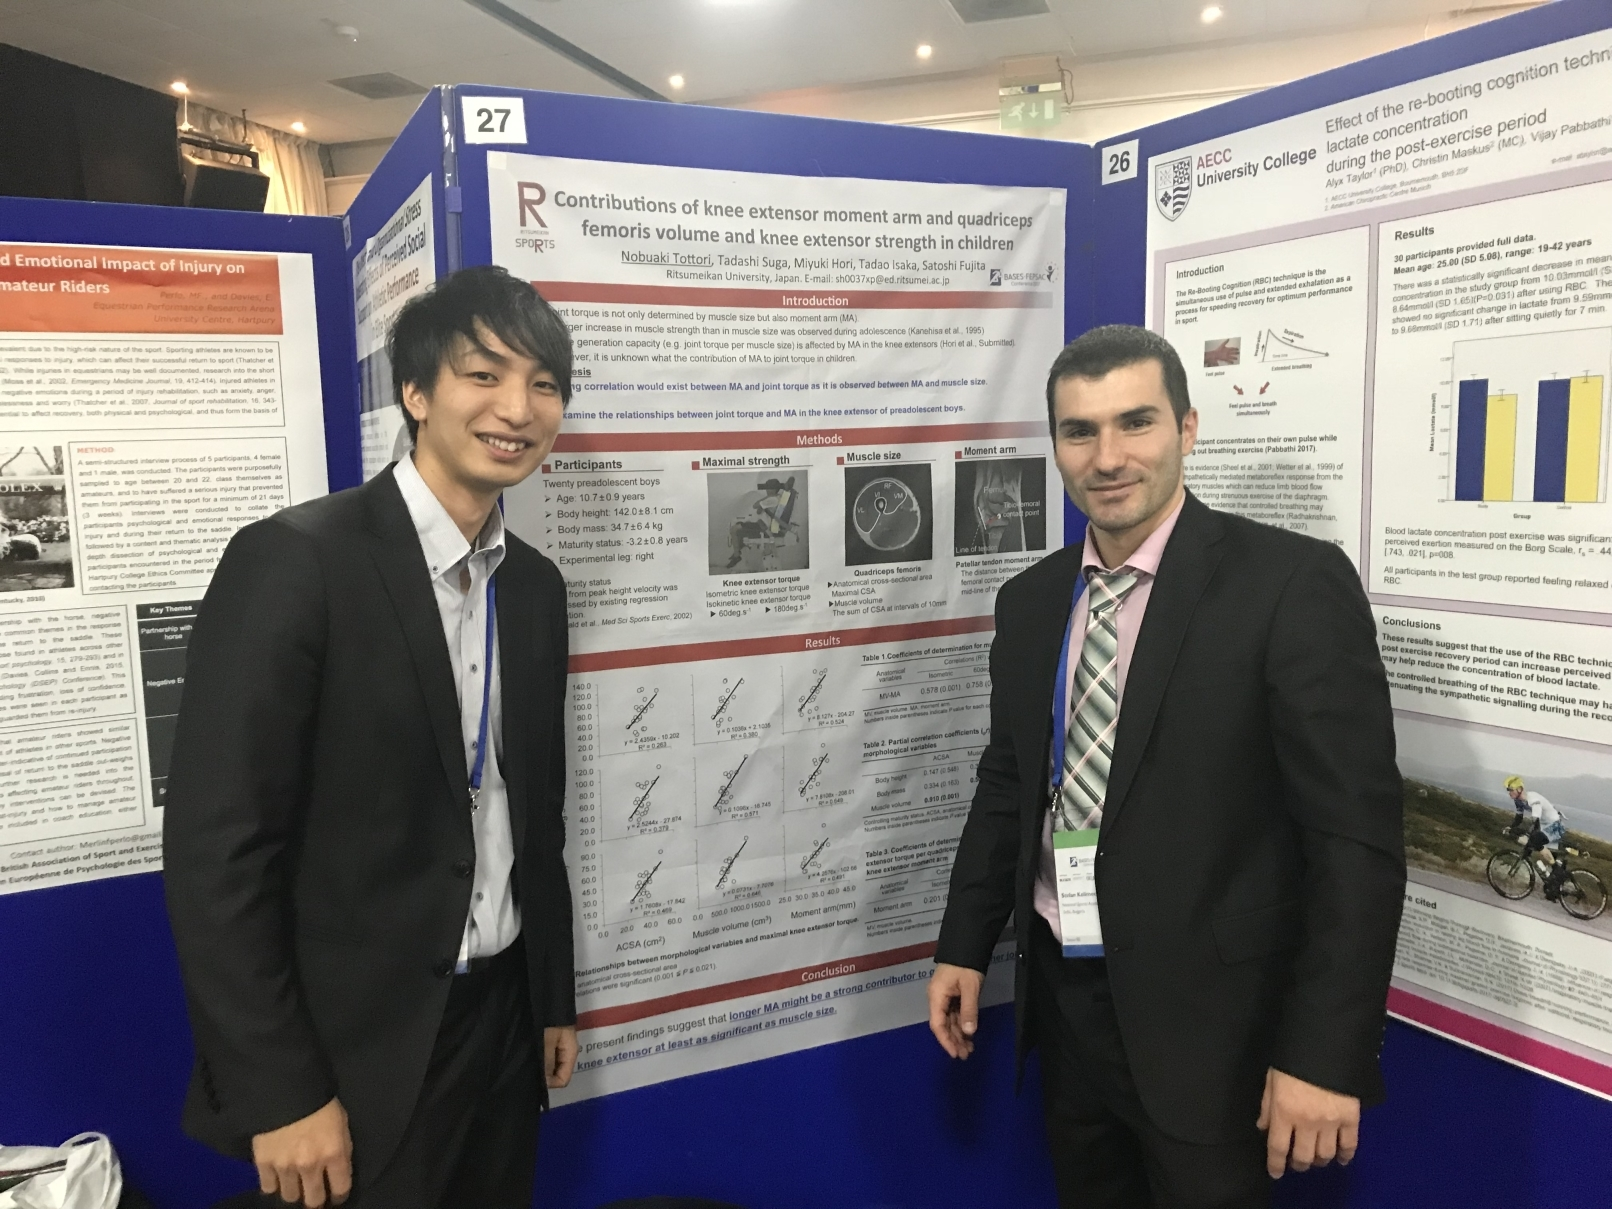 PhD students presenting at the BASES Conference